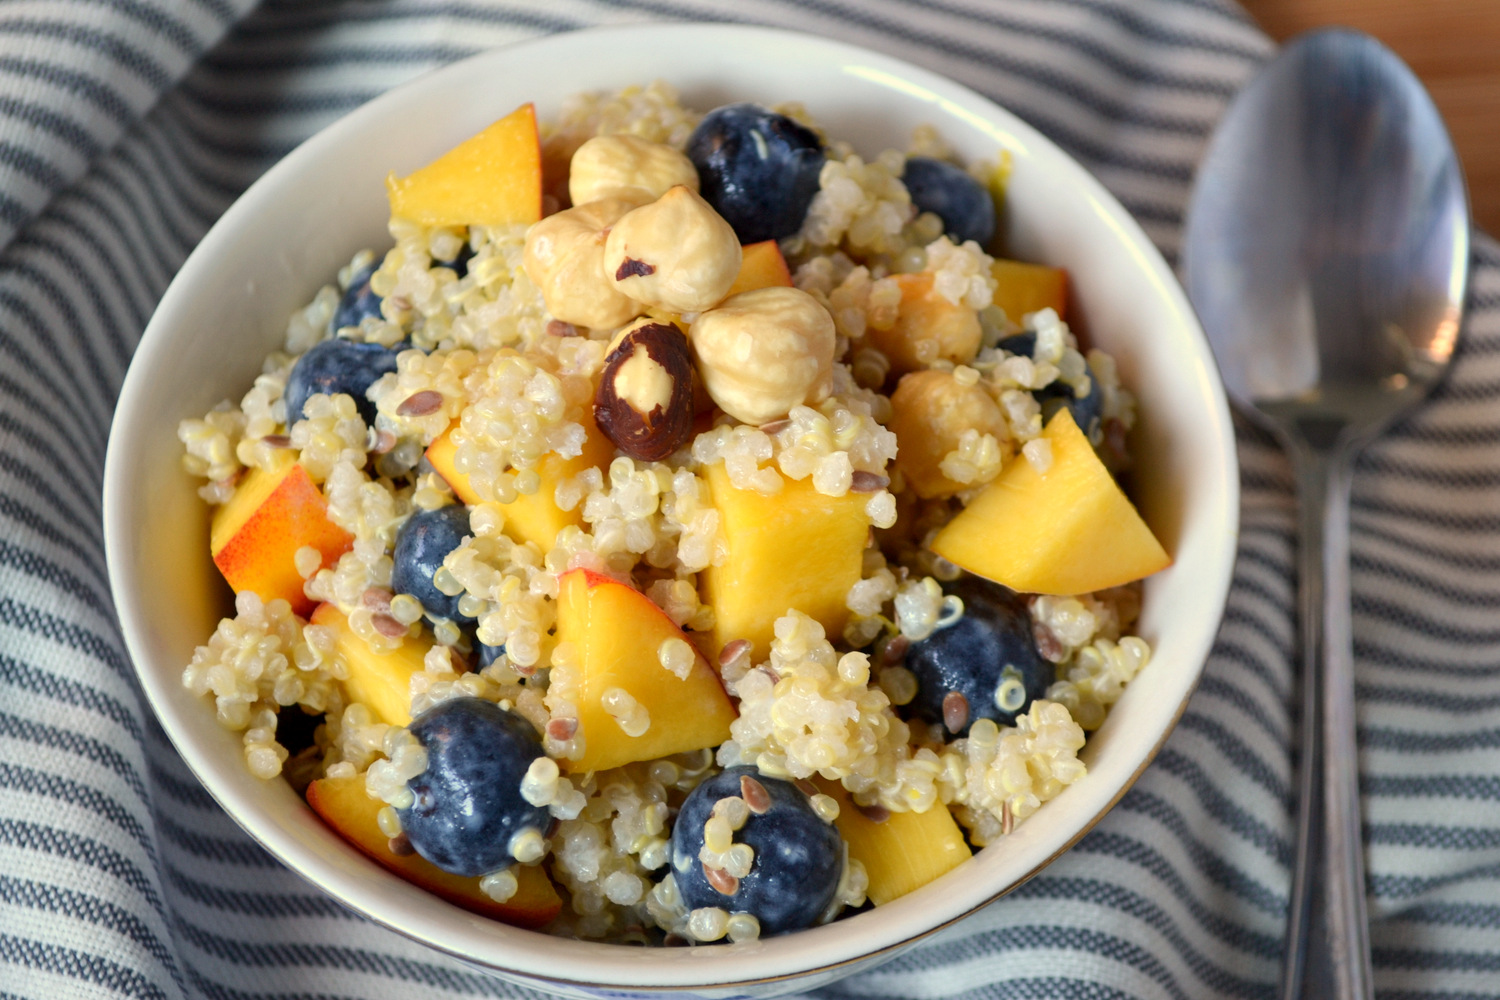 Test Kitchen: Blueberry Quinoa Breakfast Salad